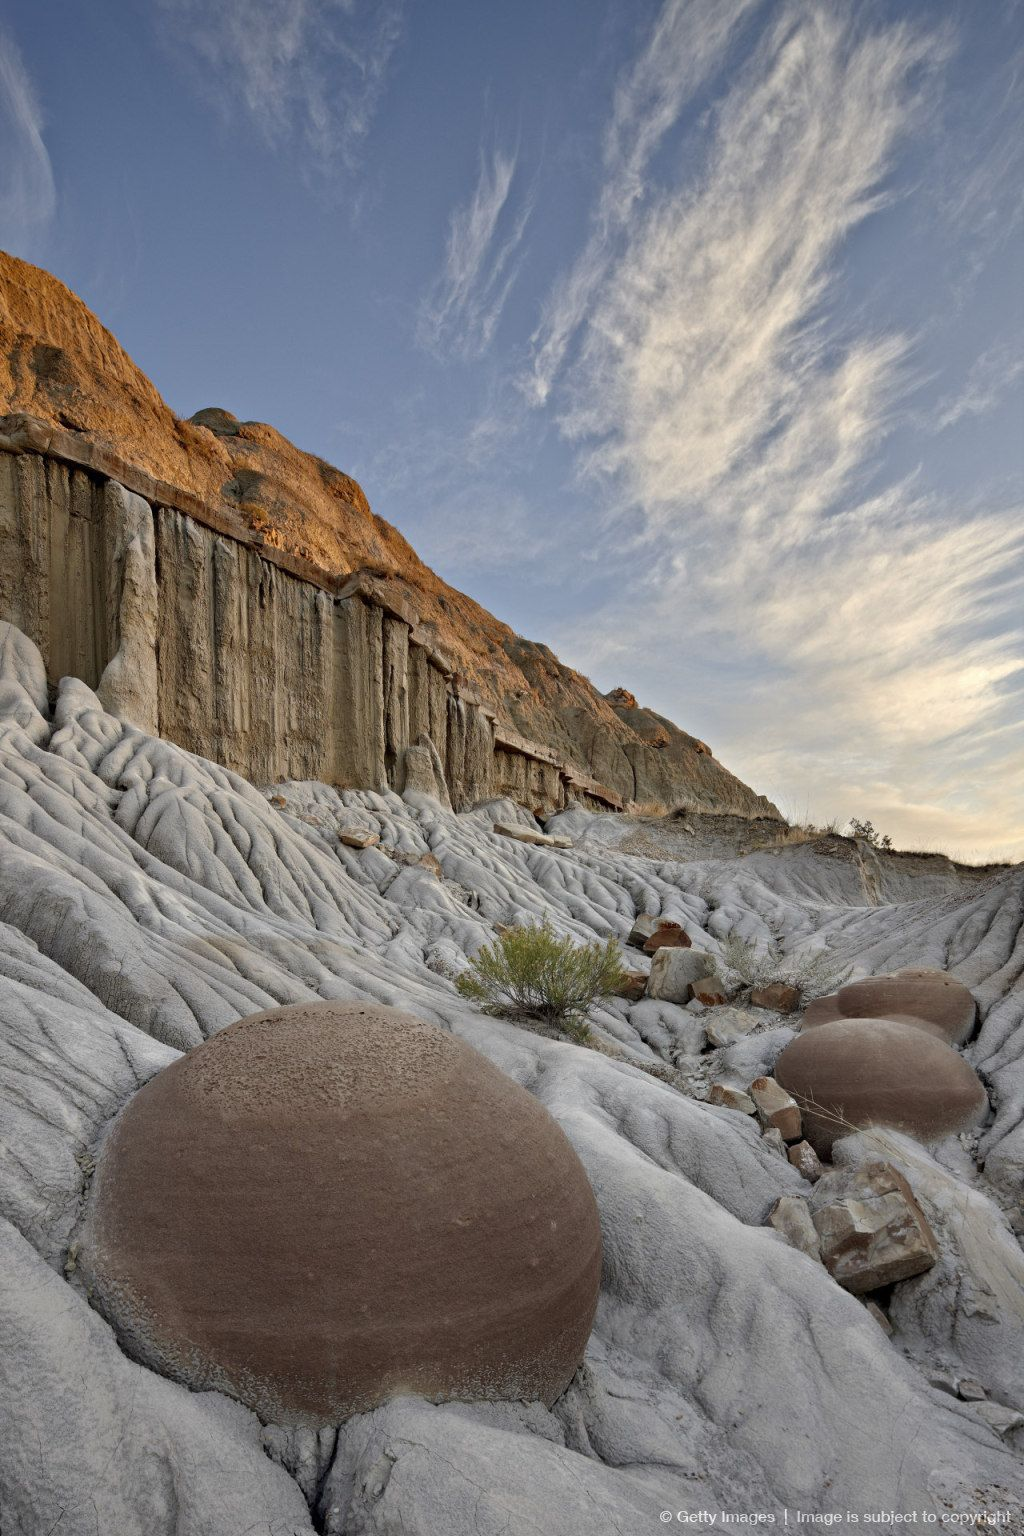 Cannon Ball Concretions In The Badlands Theodore Roosevelt National Park North Dakota